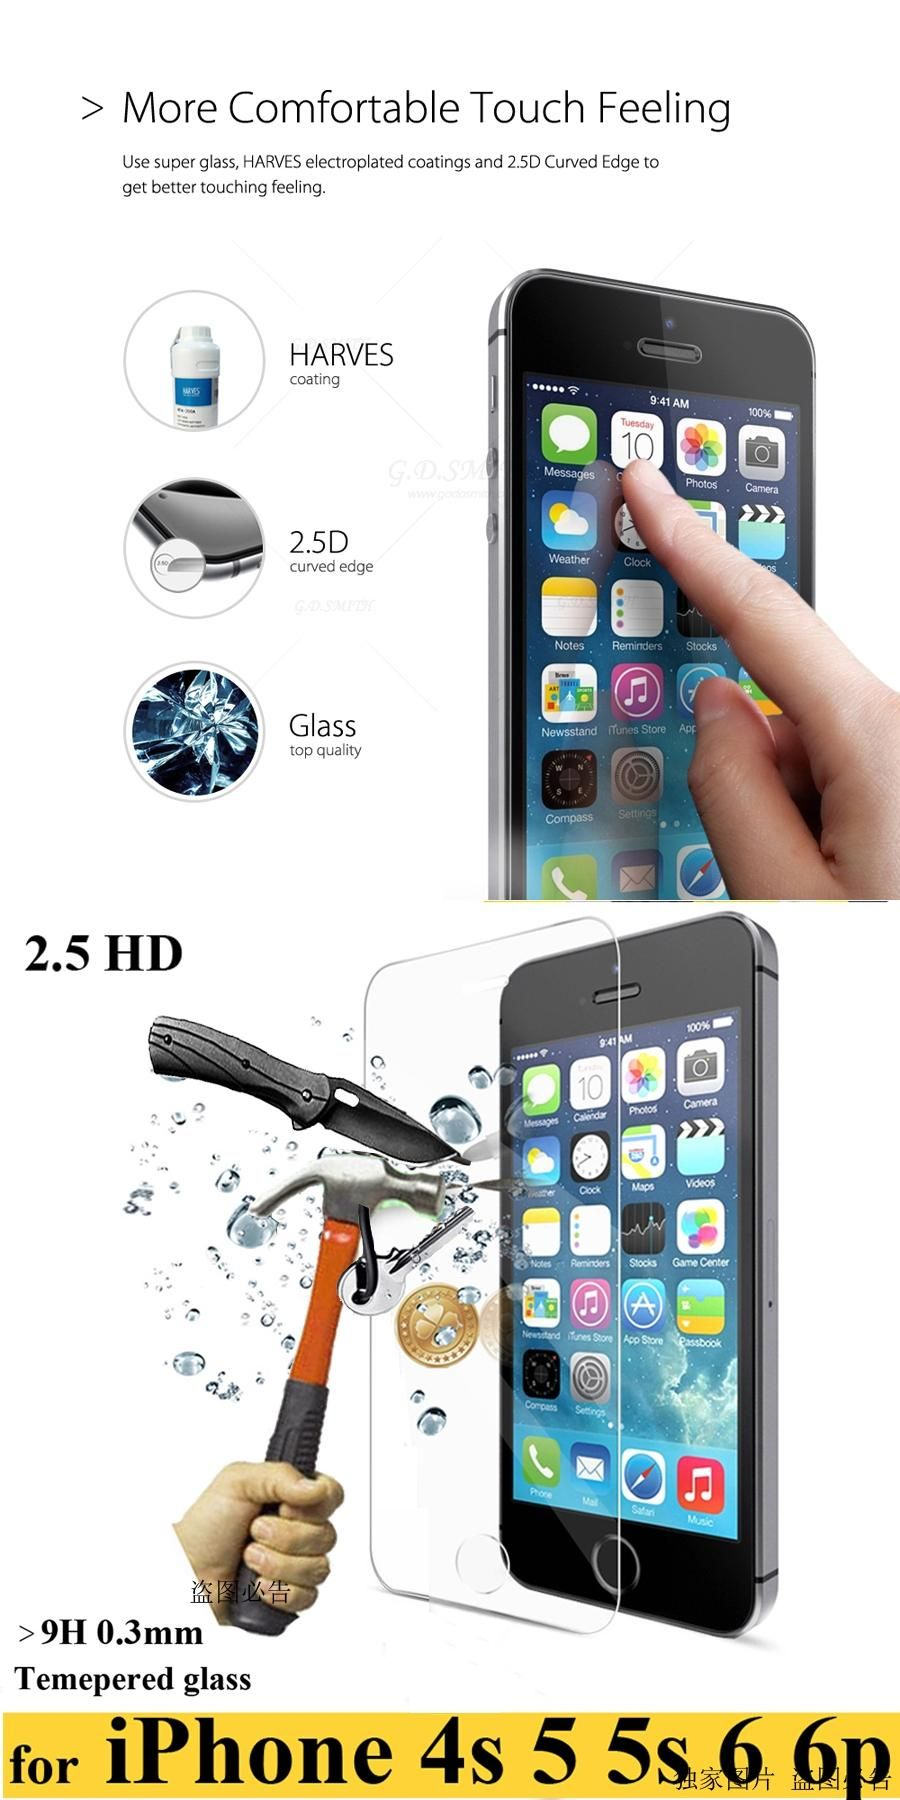 03mm 9h Ultra Thin Tempered Glass For Iphone Aifon Ifon Ihone I 4g 4s 5 5s 5c 6 6s Plus Phone 4 25d Screen Protector